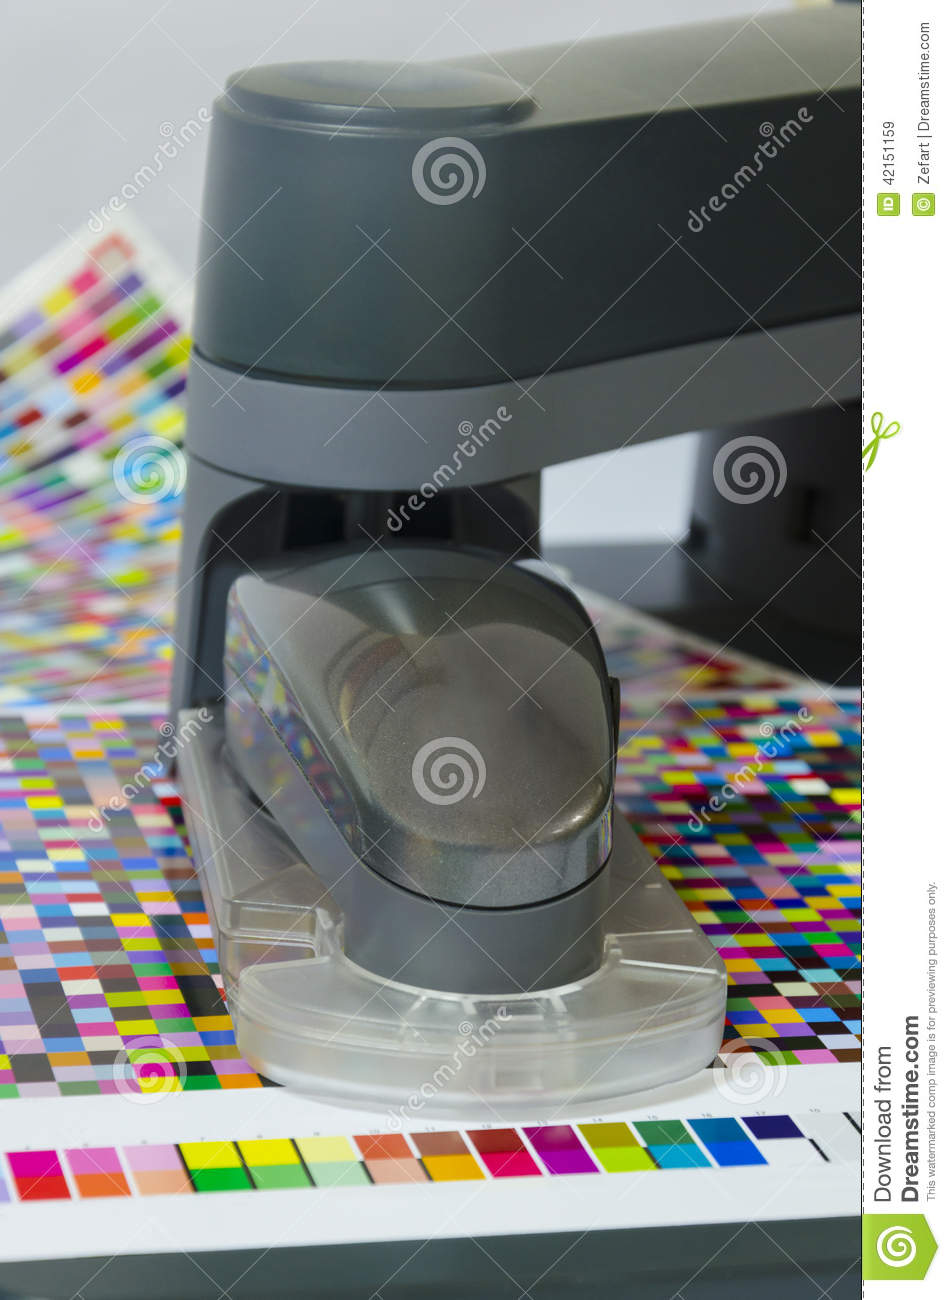 Spectrophotometer robot stock image  Image of automatic